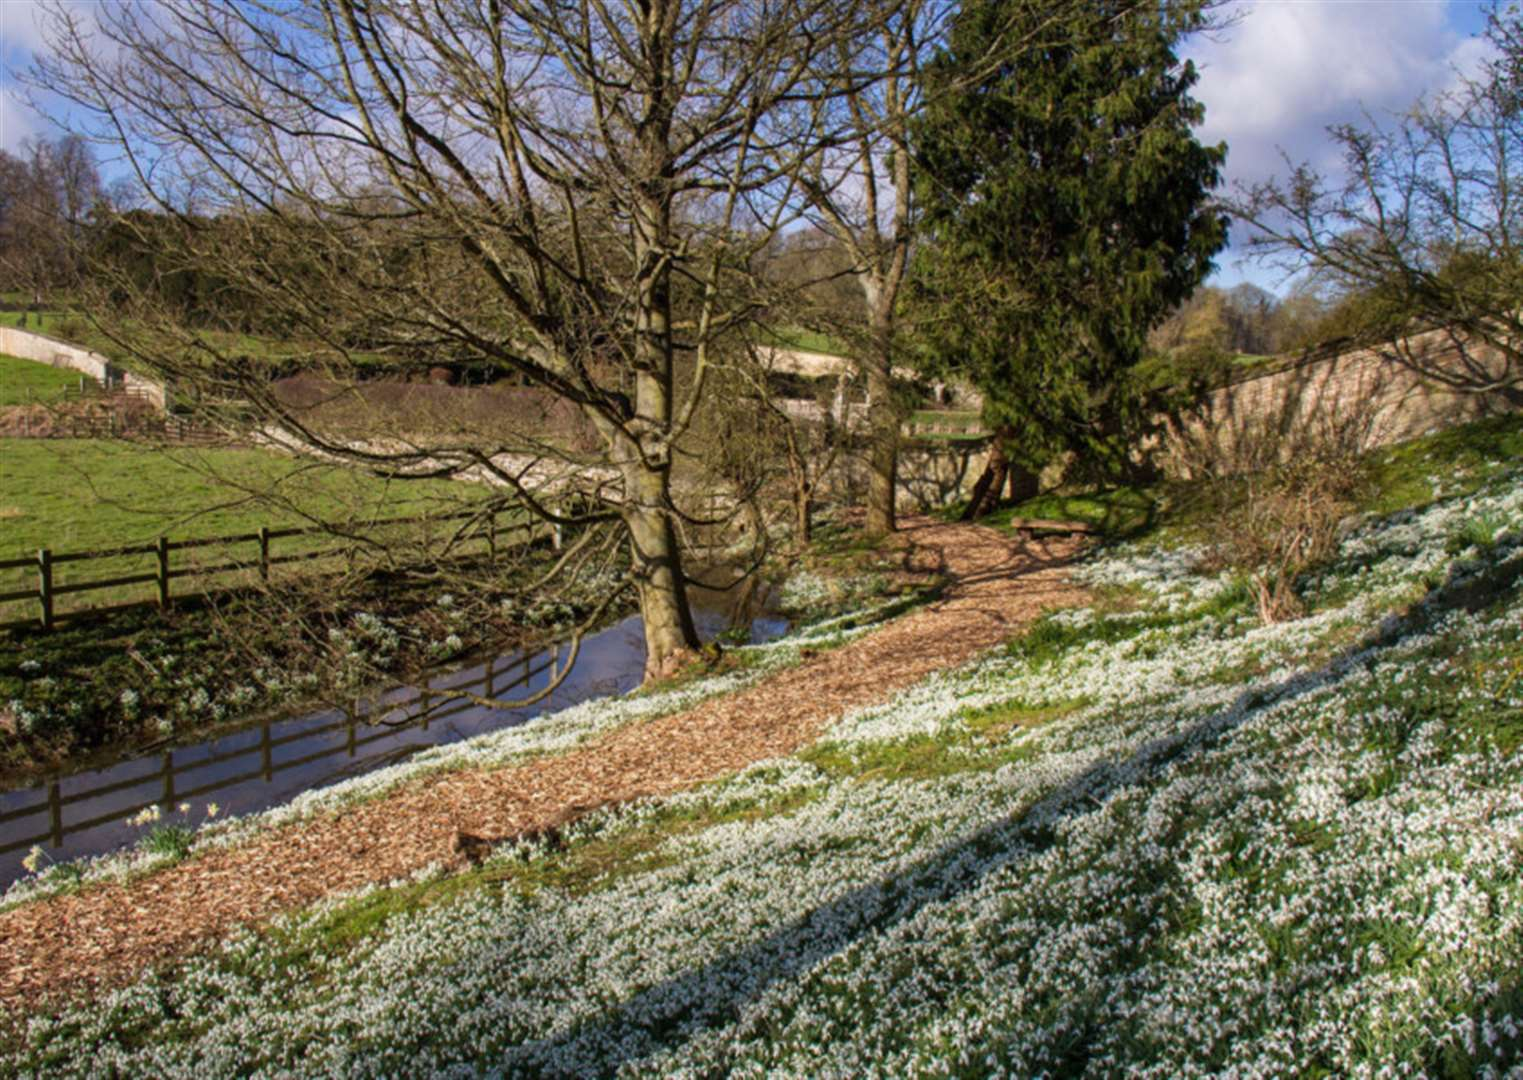 WHAT'S ON: Snowdrop Week begins at Easton Walled Gardens